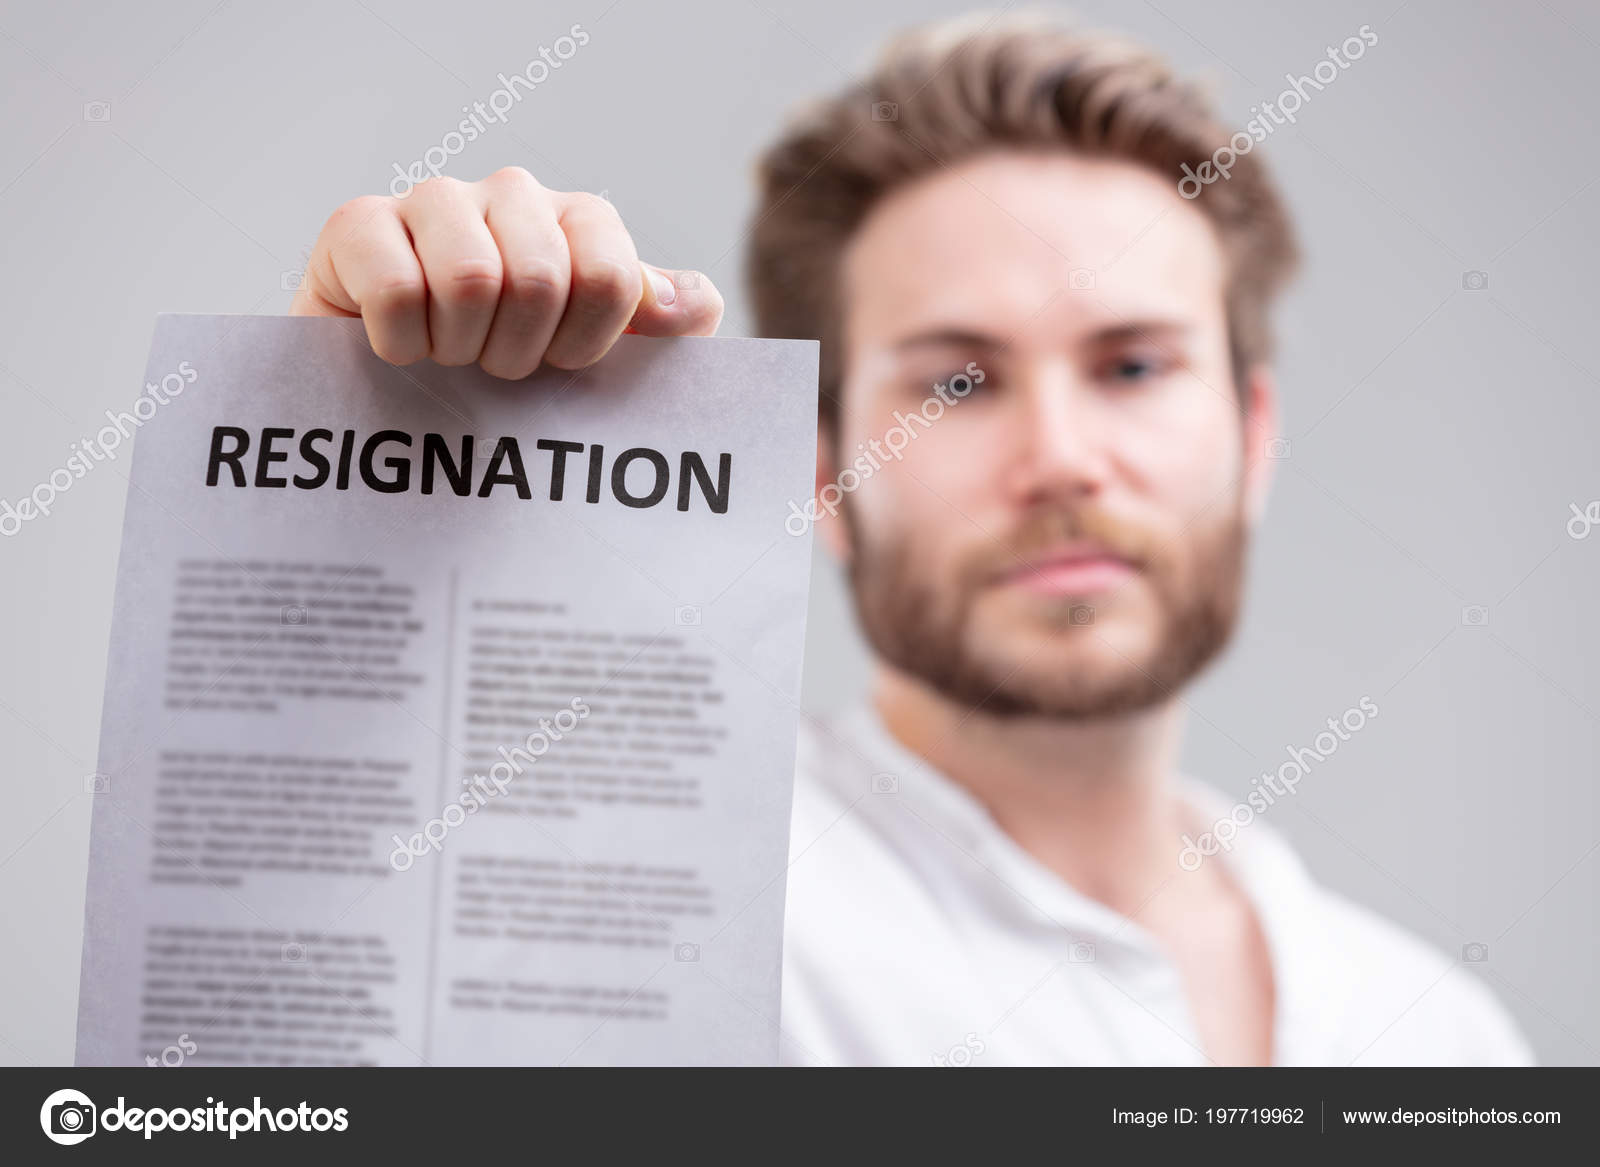 Man Holding Resignation Letter Terminating His Employment Contract ...